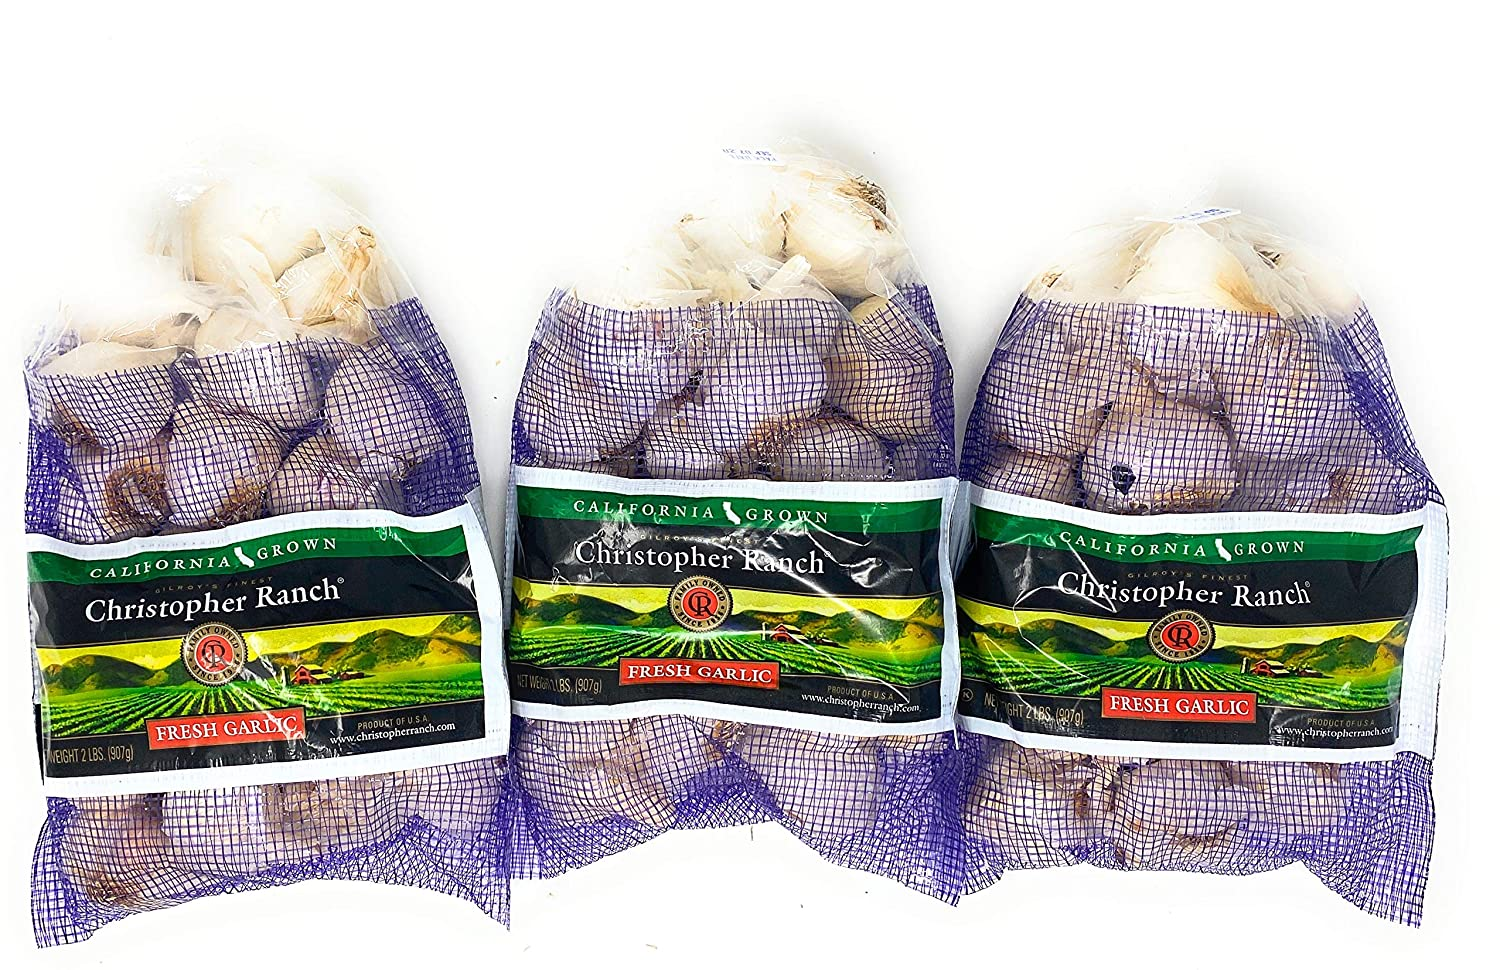 3 Pounds Fresh Garlic USA Max 62% OFF California o Pack Finest Wholesale Gilroy Grown